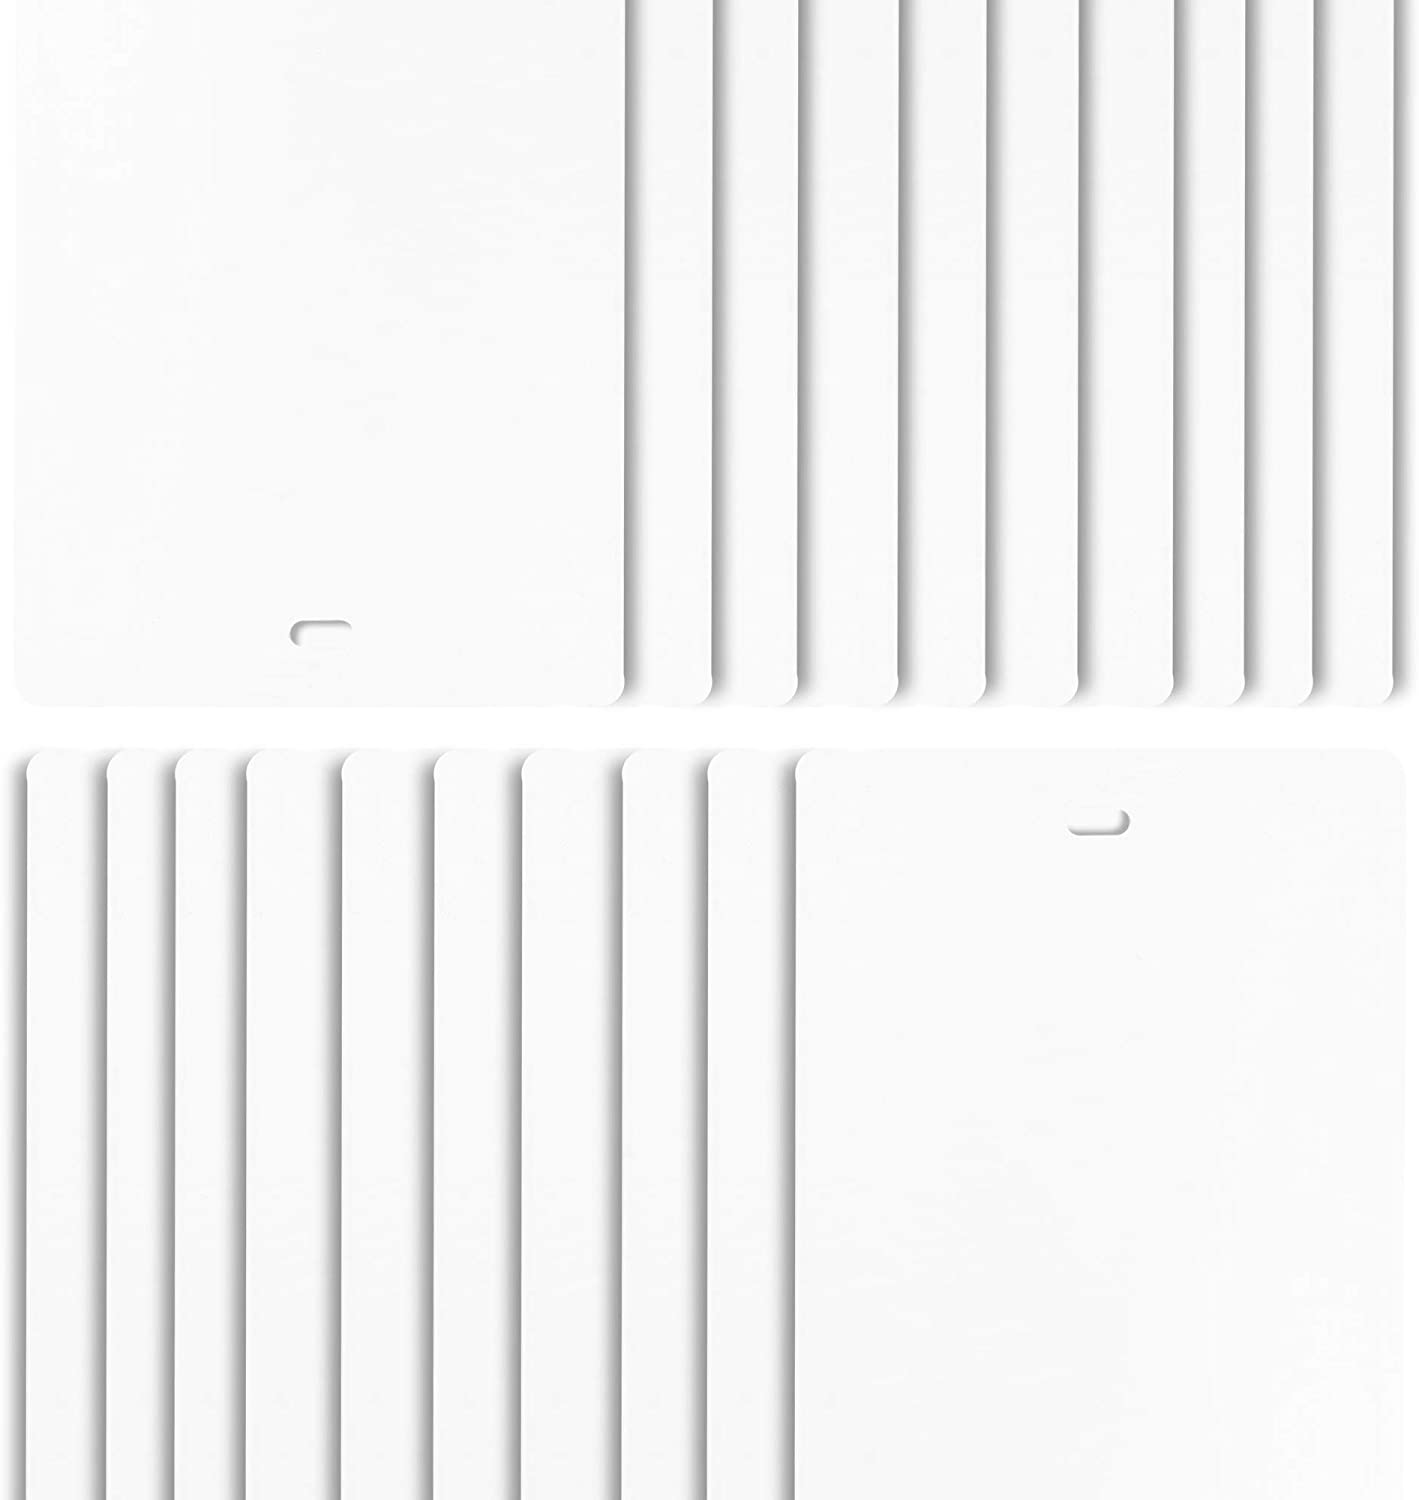 DALIX PVC Vertical Blind Replacement Slats Curved Smooth White 52.5 x 3.5 (20-Pack)